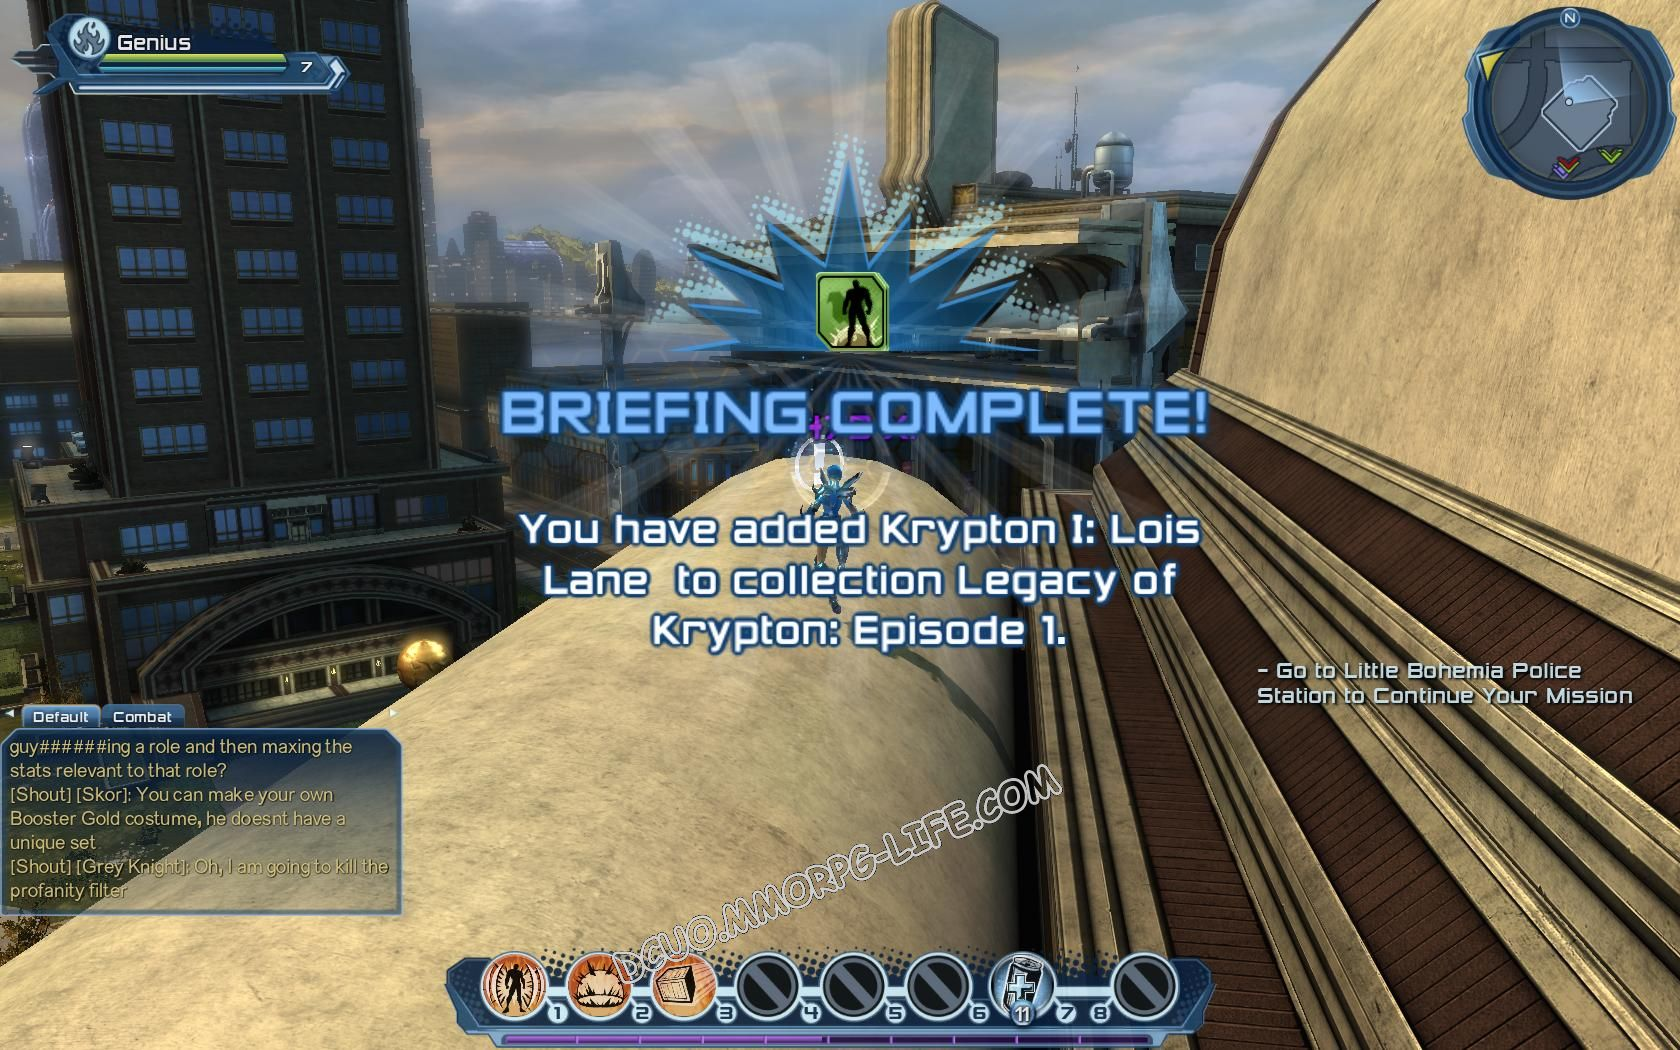 Briefing: Legacy of Krypton Episode 1, step 6 Krypton I: Lois Lane (2)  image 476 middle size